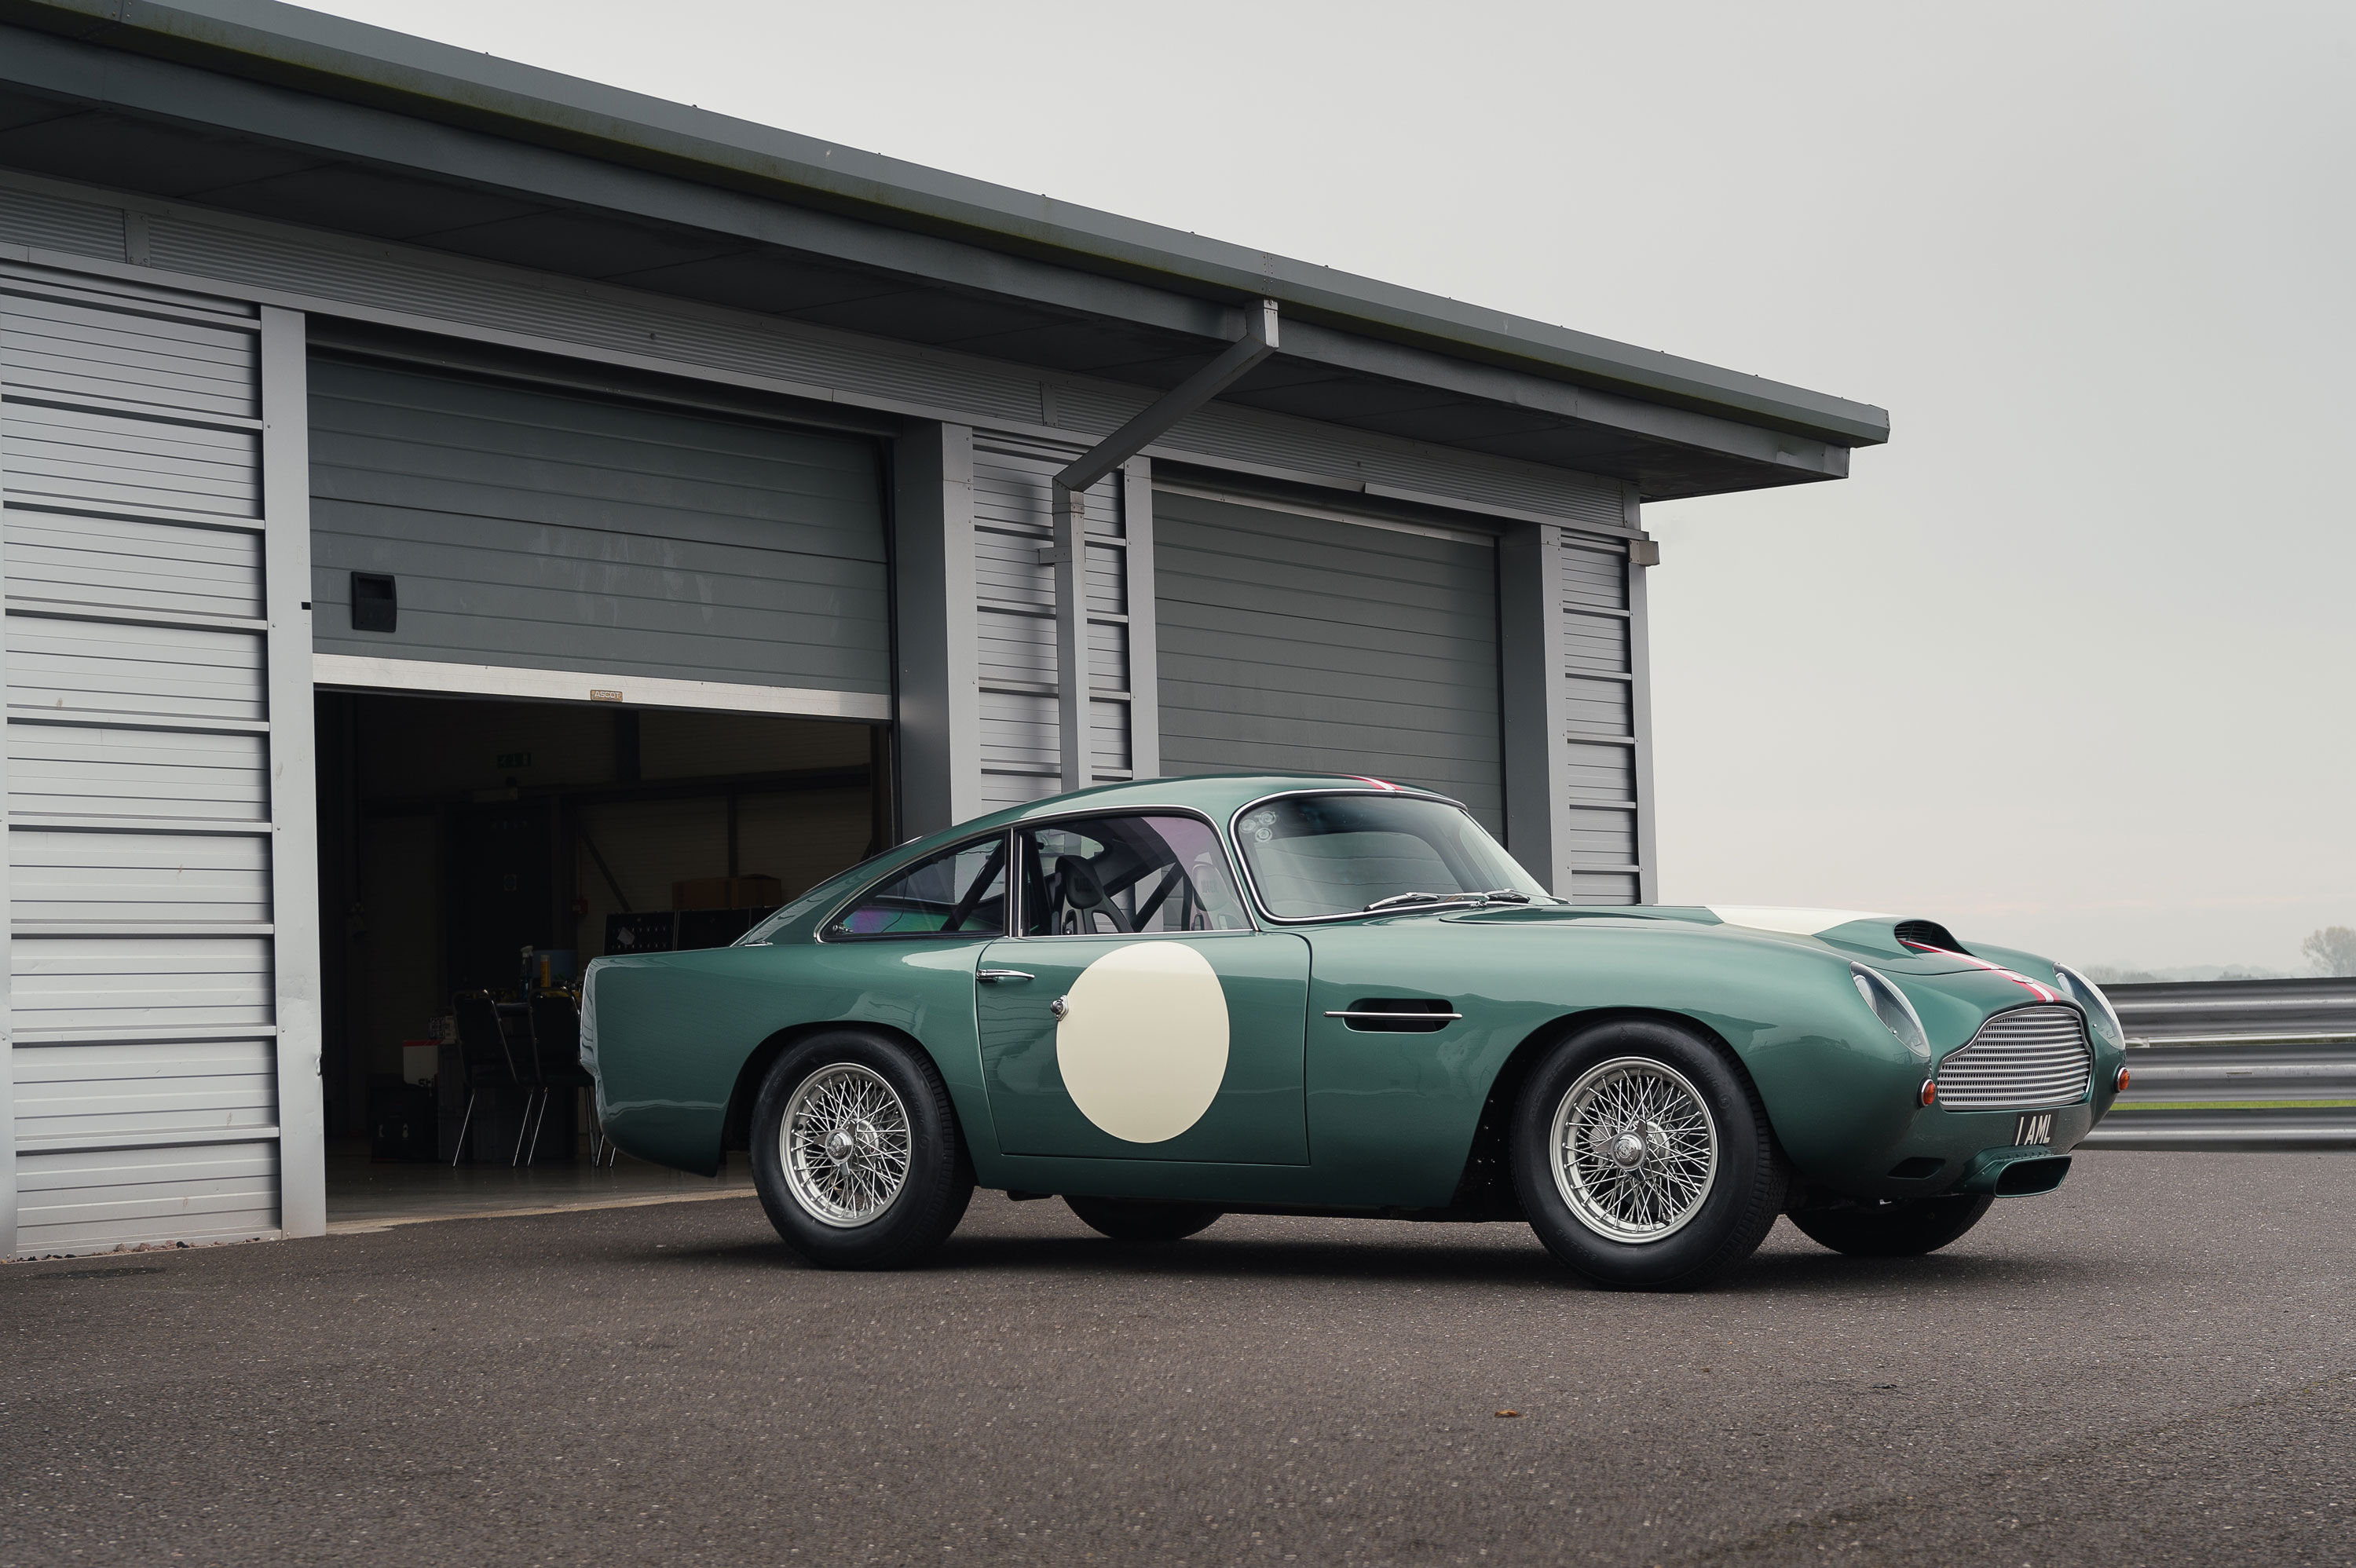 1959 Aston Martin DB4 GT at the garage